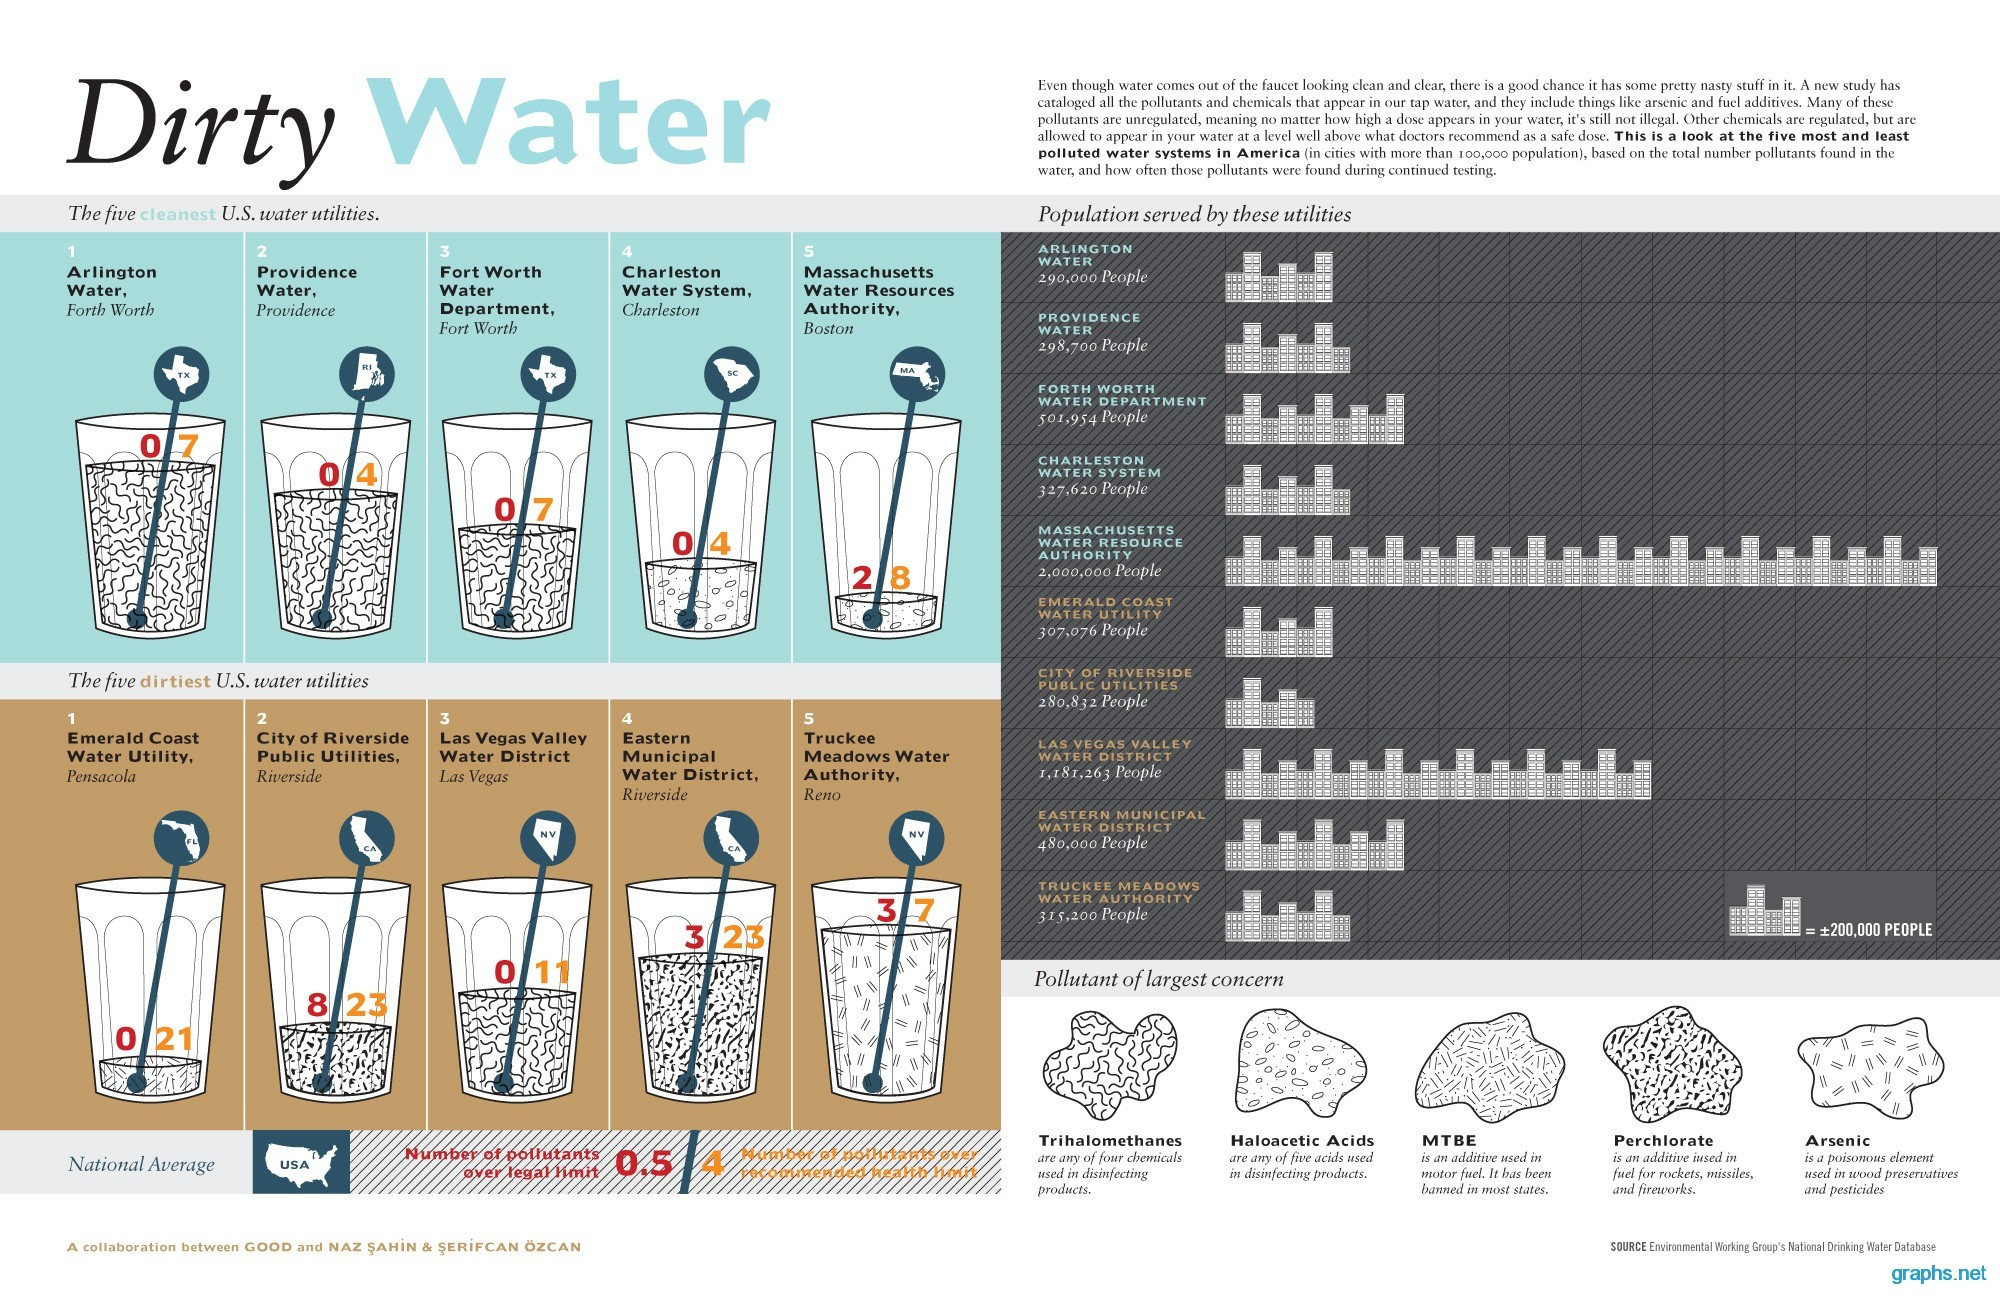 dirty water facts in america